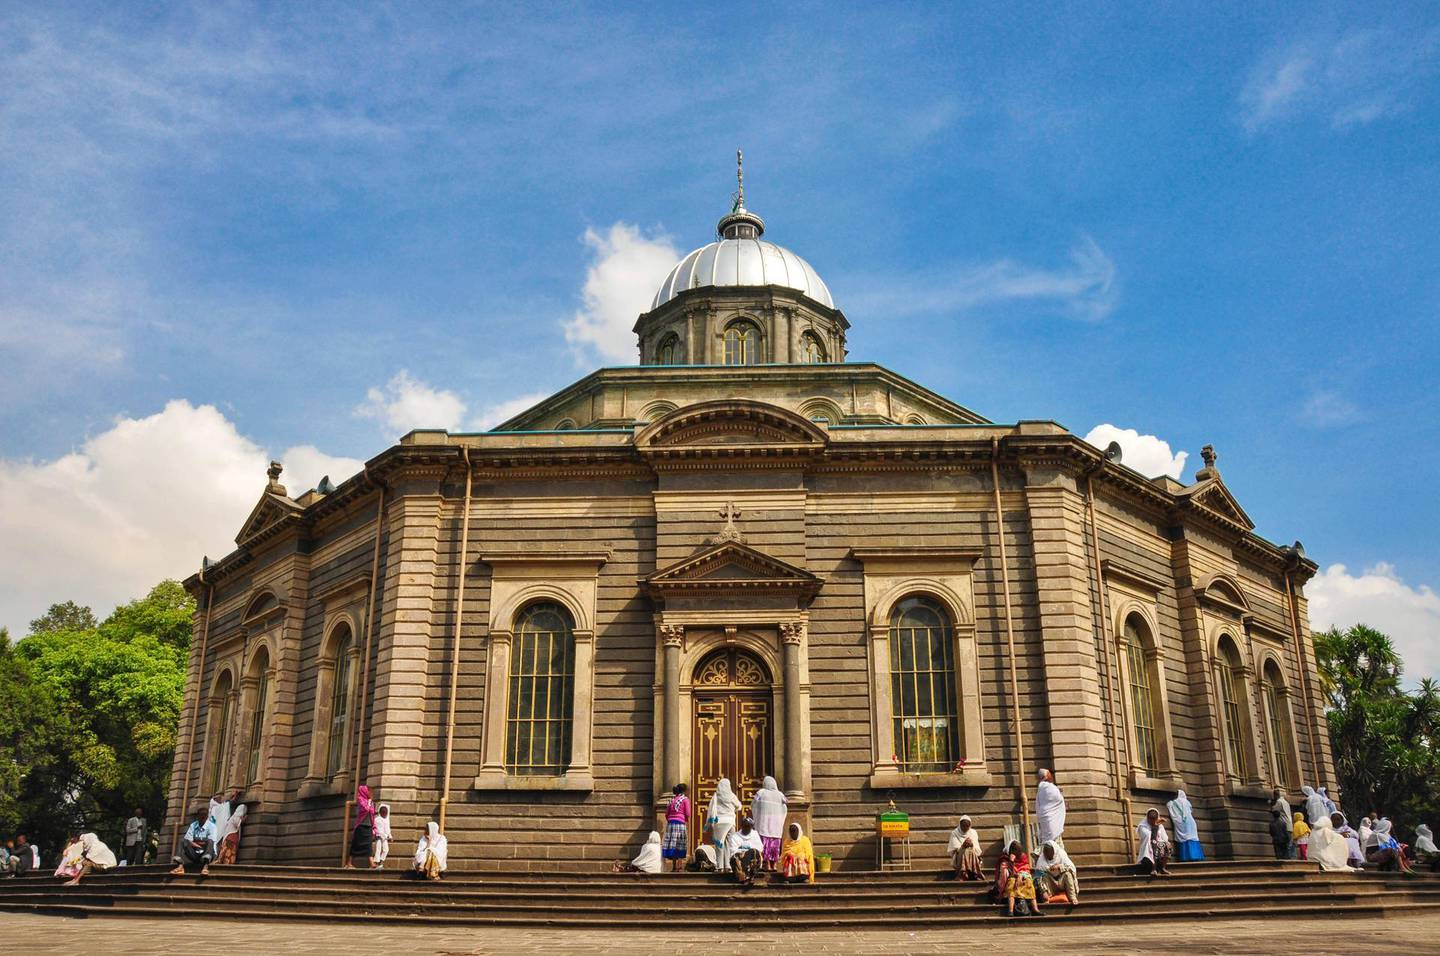 St George Church is an Orthodox cathedral in Addis Ababa, Ethiopia. It has distinctive octagonal form.Everyday, but especially on sunday the believers are gathering and praying in and outside around the church. Women and girls are covering their heads and shoulders with white scarfs. Getty Images